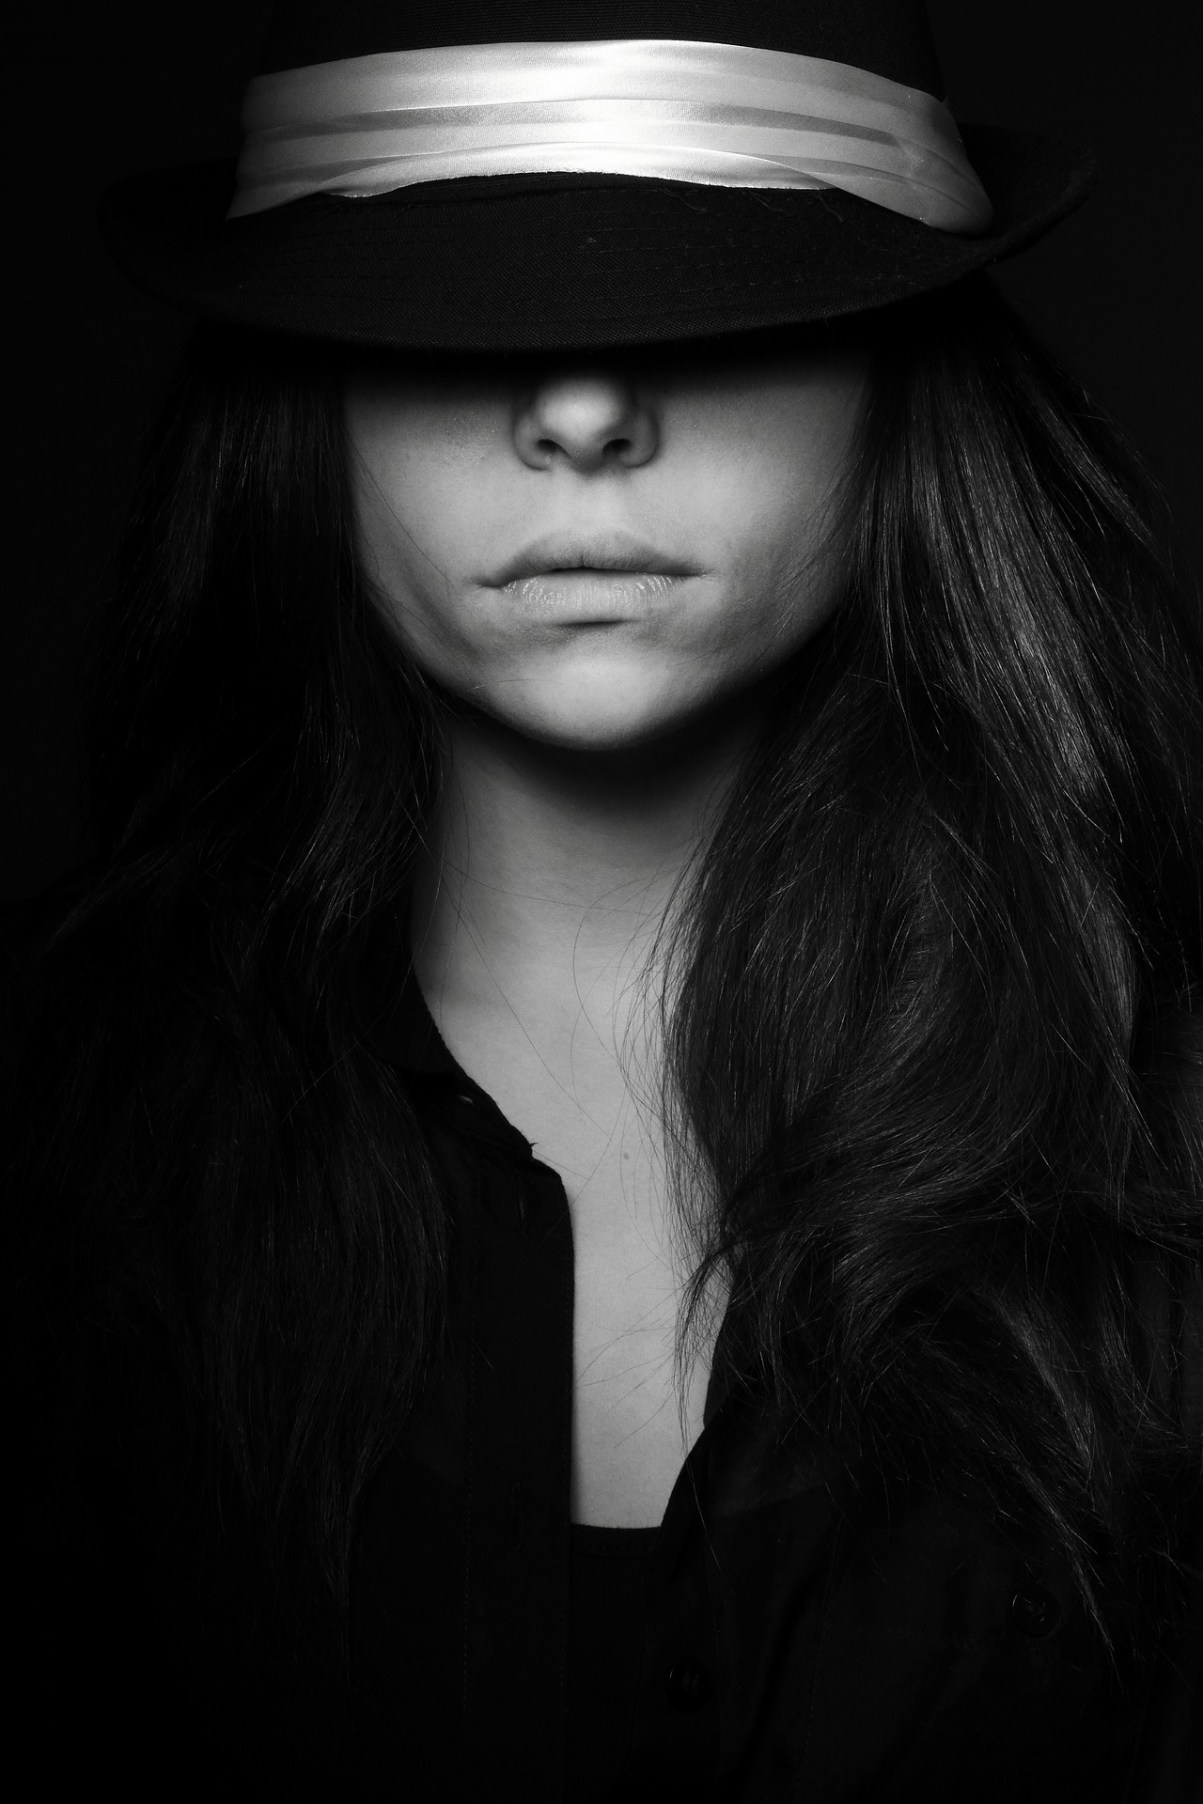 Experiment with lighting, there are no standard rules for lighting when it comes to black and white portraiture.